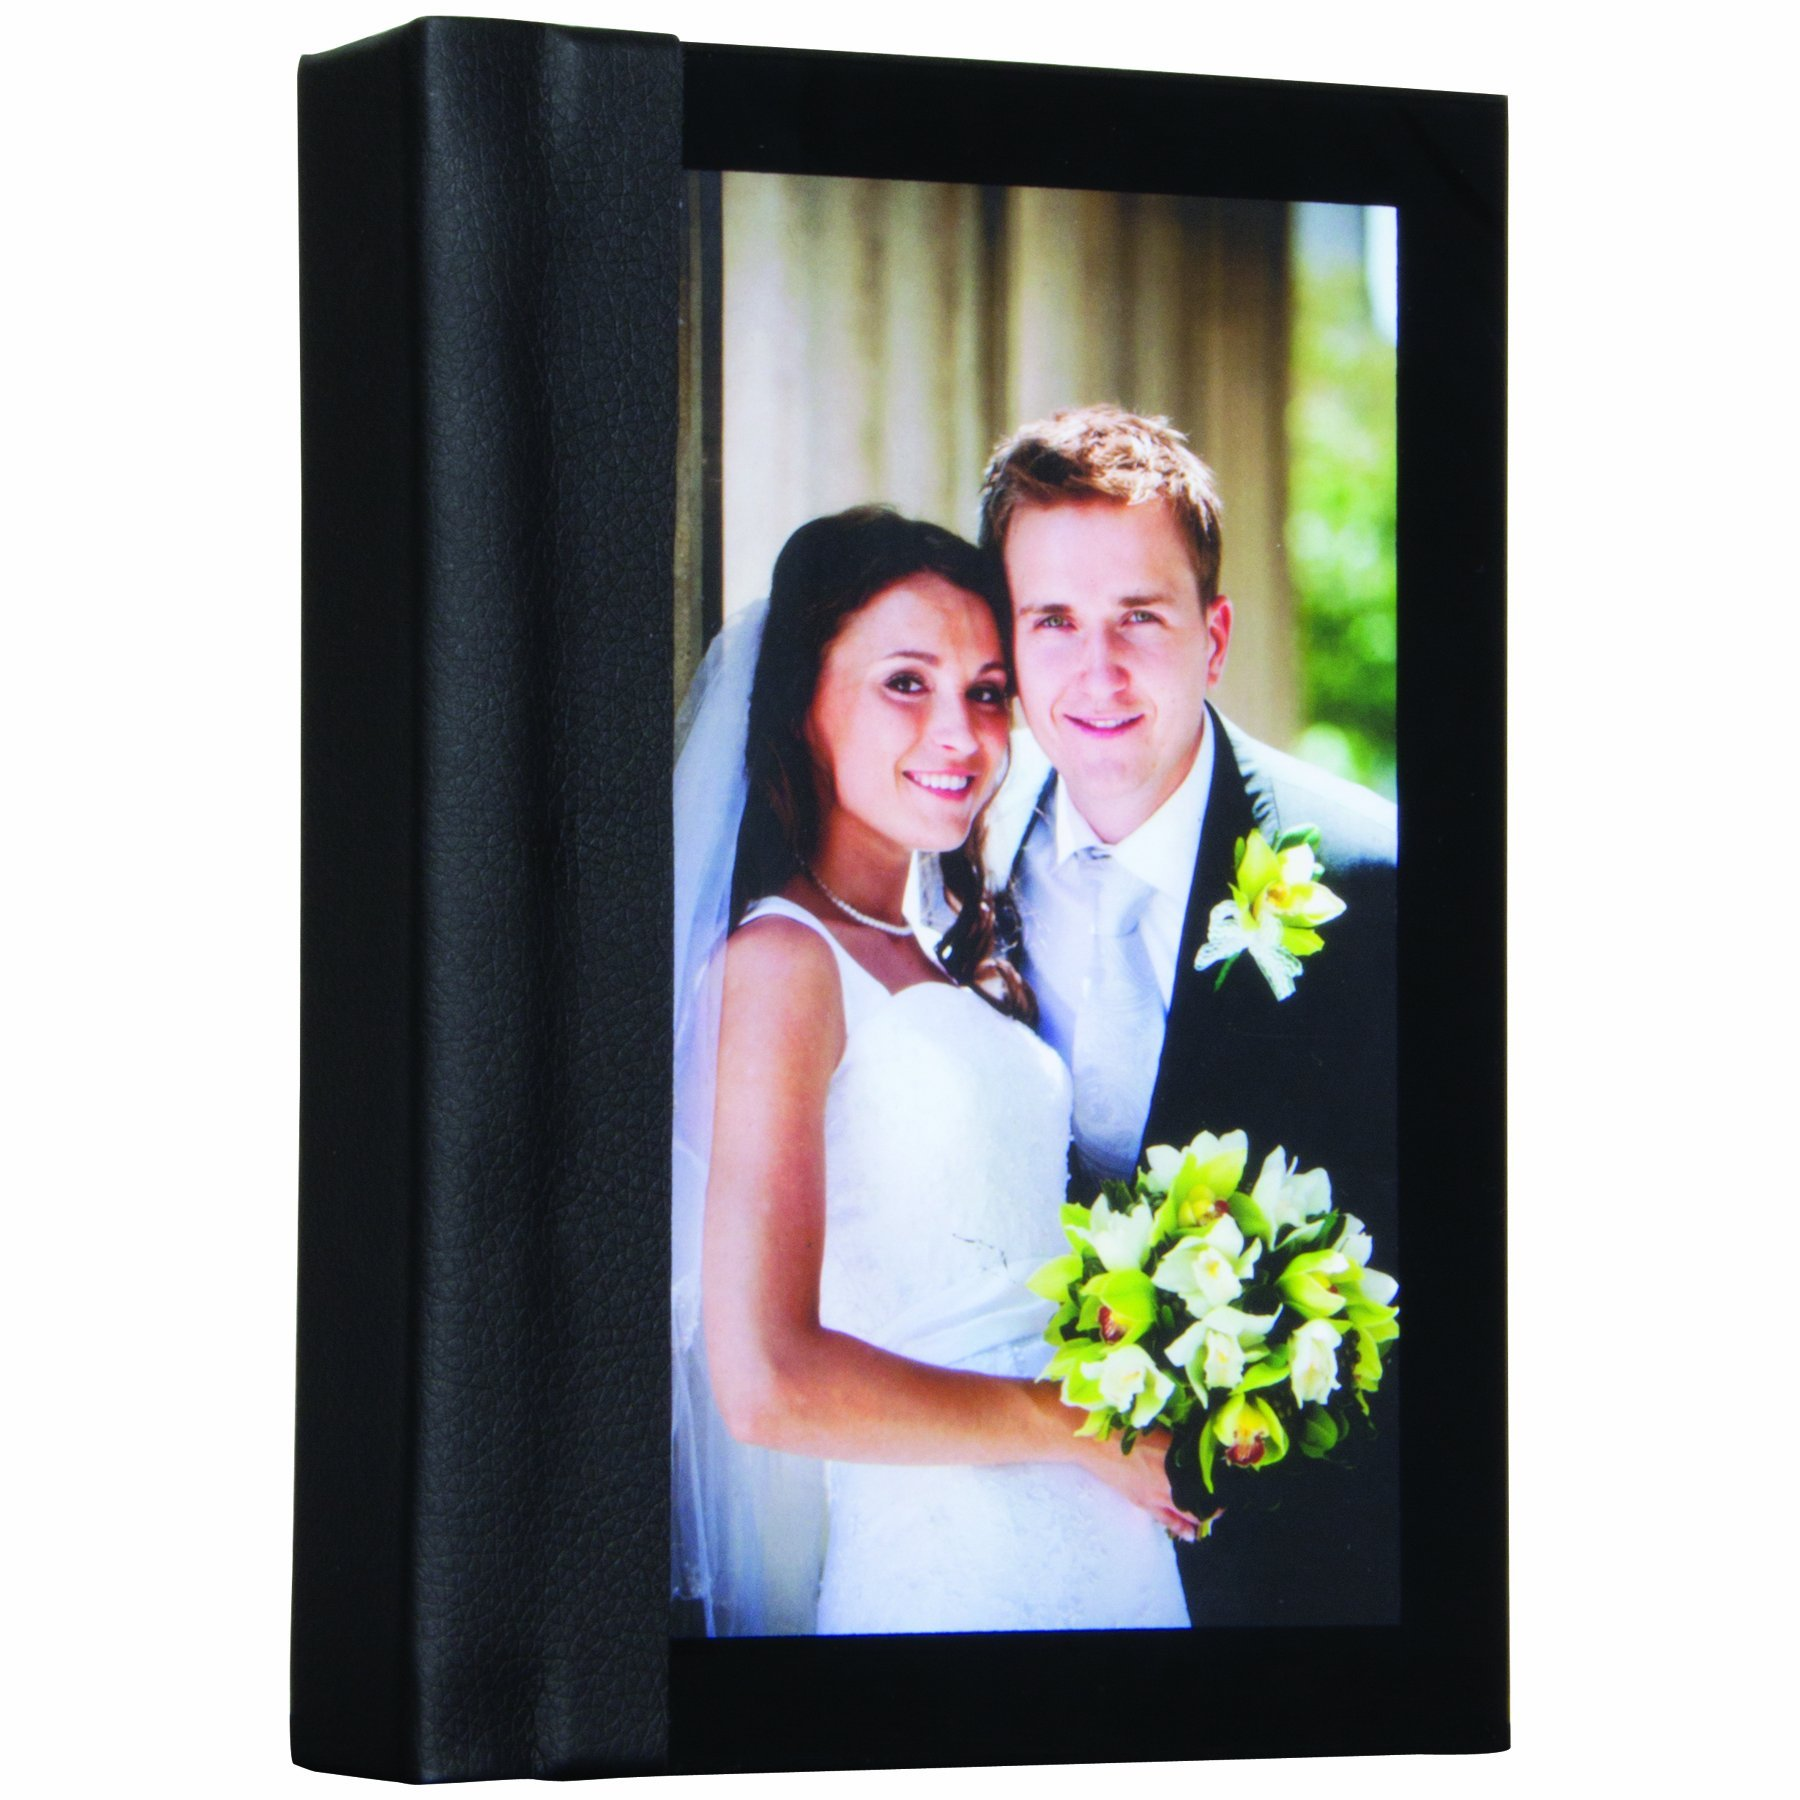 5'' x 7'' Acrylic Cover Self-Stick Photo Albums - Case of 12 by Neil Enterprises